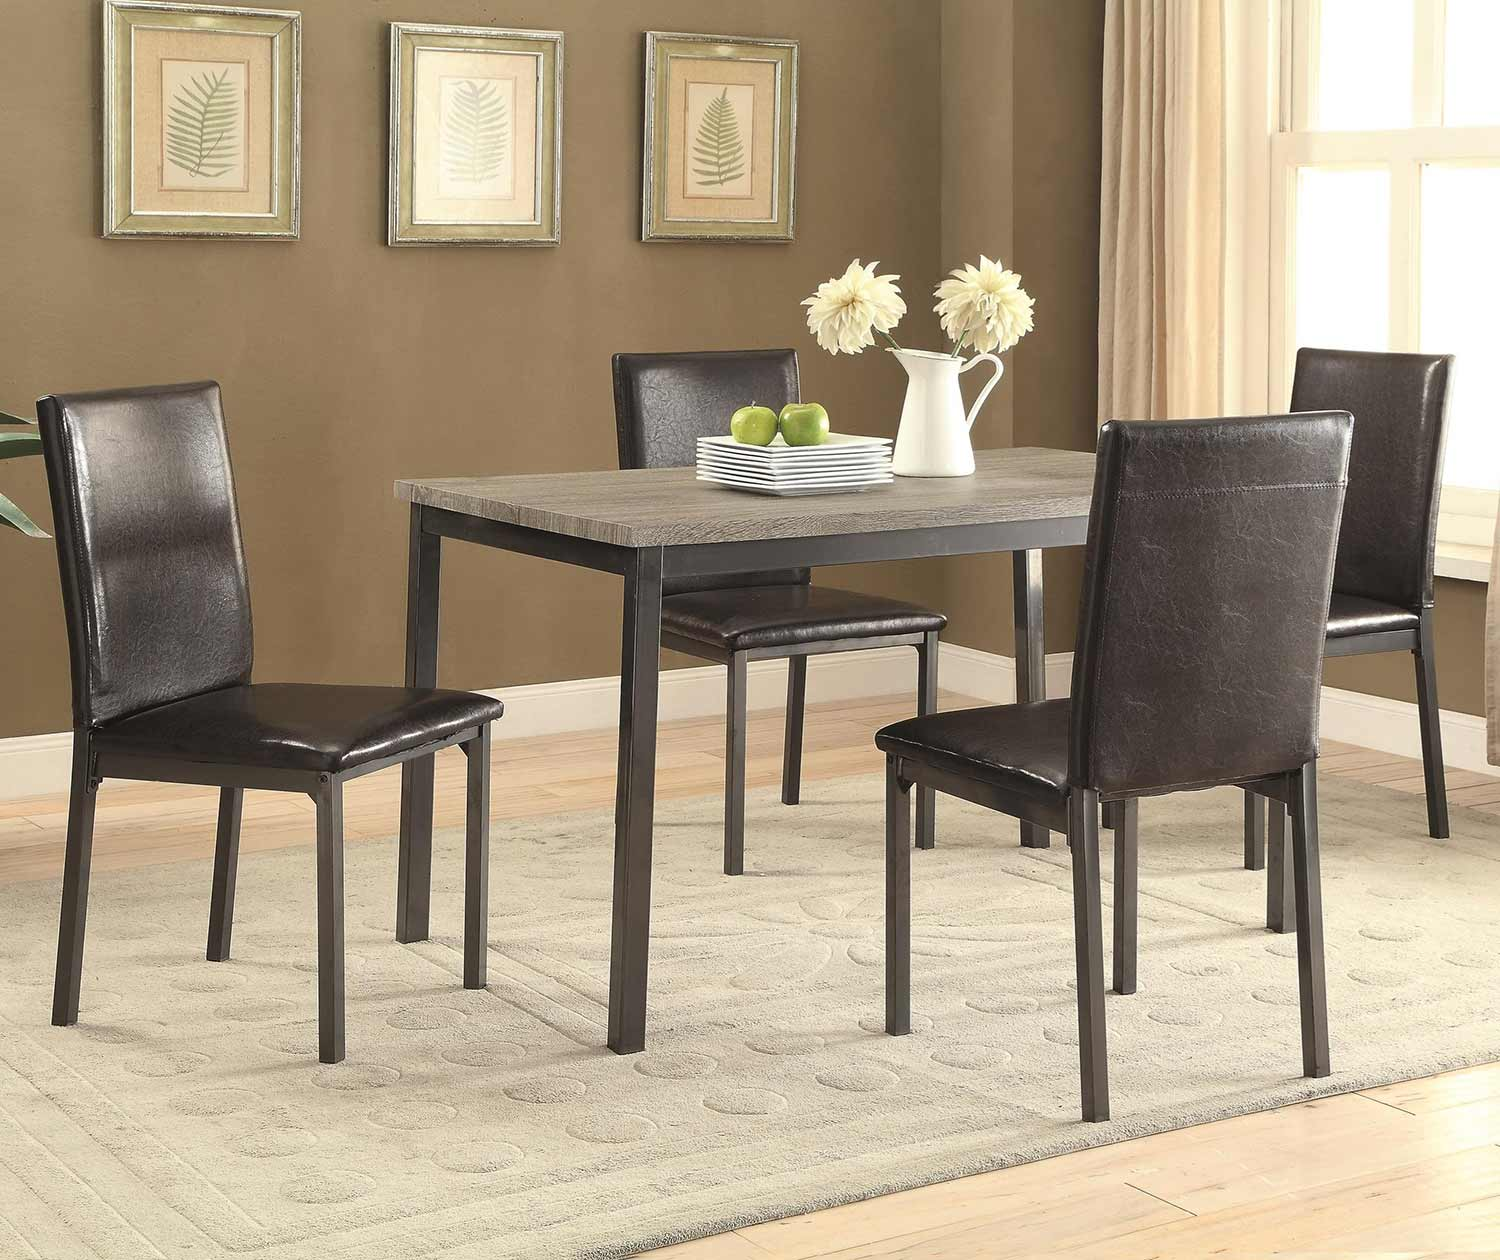 Coaster Garza Rectangular Dining Set - Black